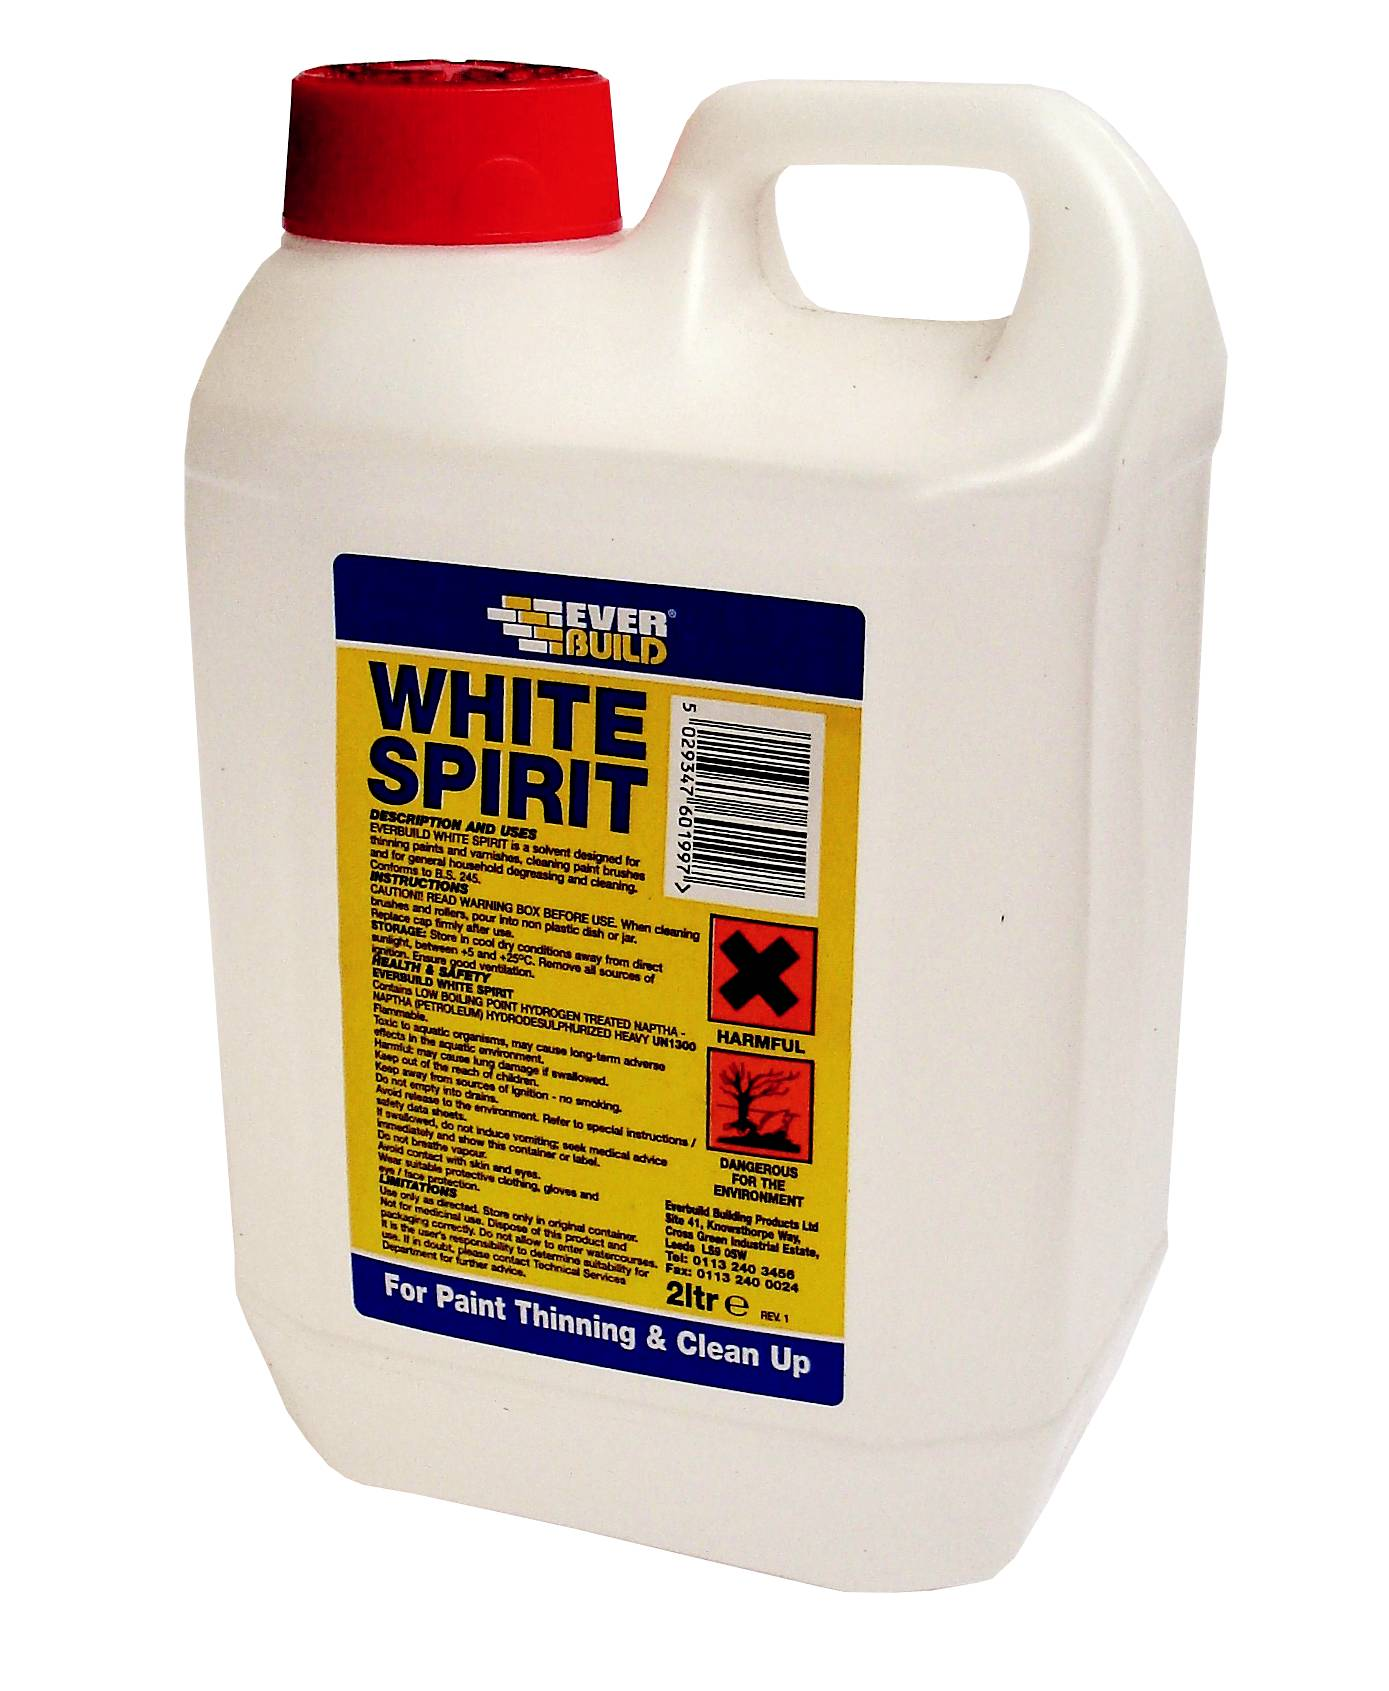 Decorating Products White Spirit